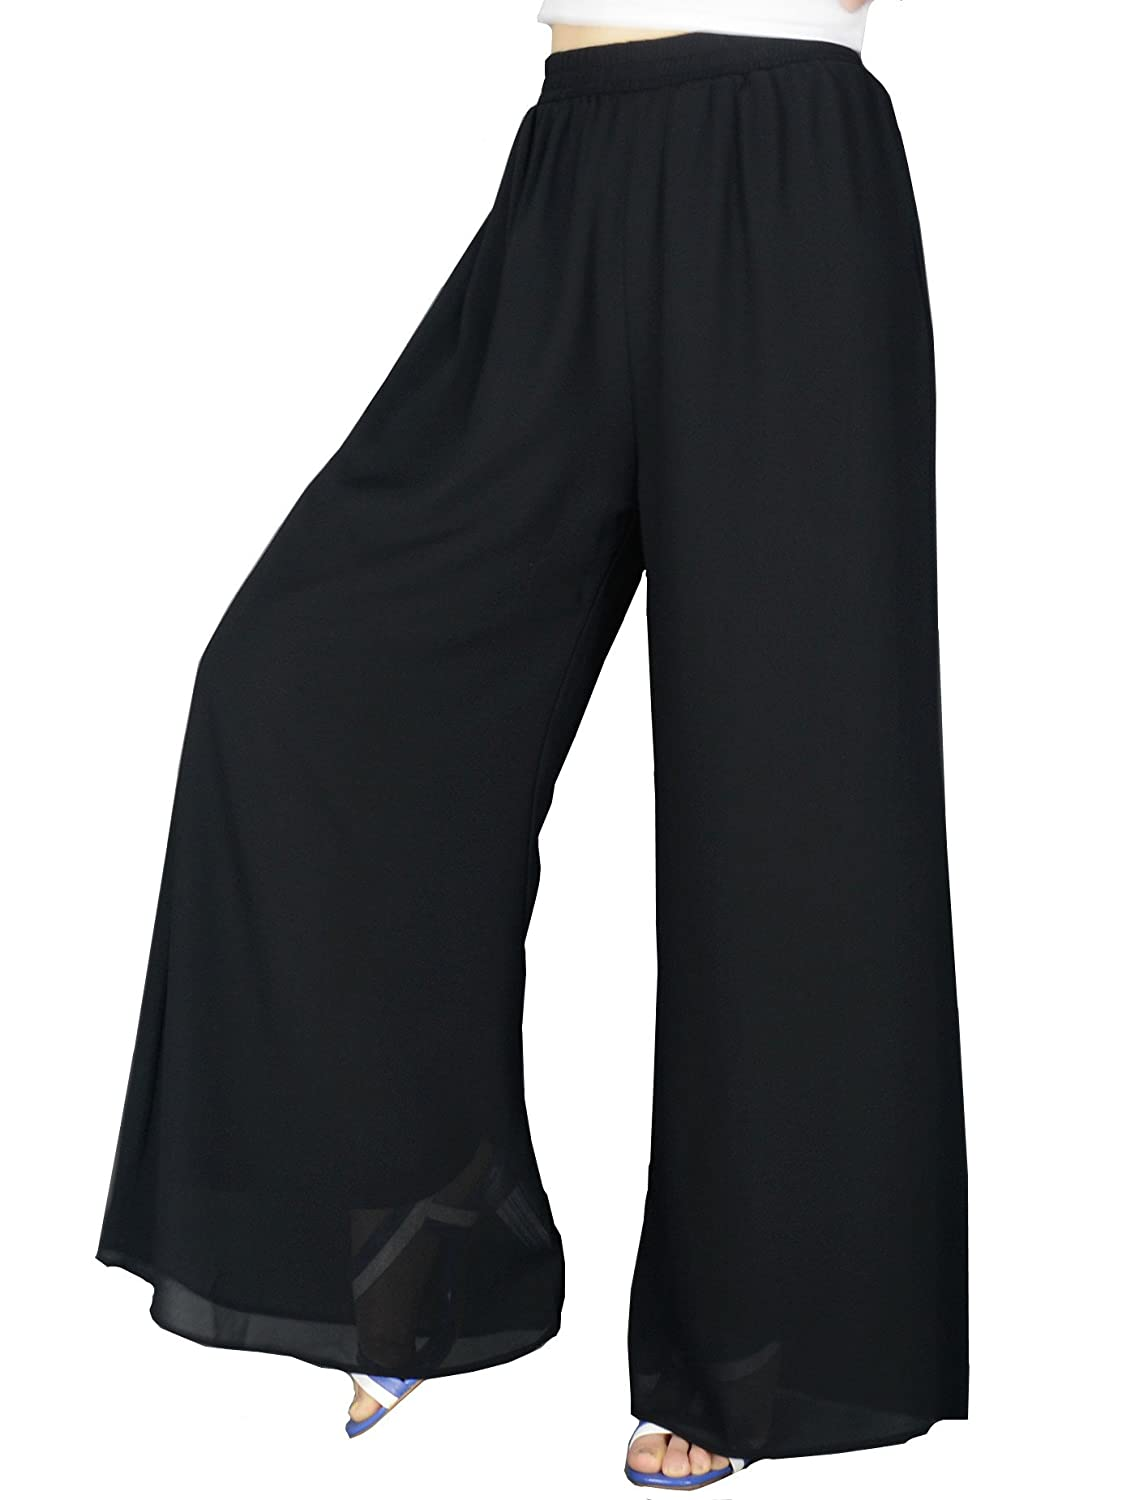 Did Women Wear Pants in the 1920s? Yes! sort of… YSJERA Womens Chiffon Wide Leg Palazzo Pants Maxi Full Length Solid Gaucho Pants Culottes Trousers $21.99 AT vintagedancer.com